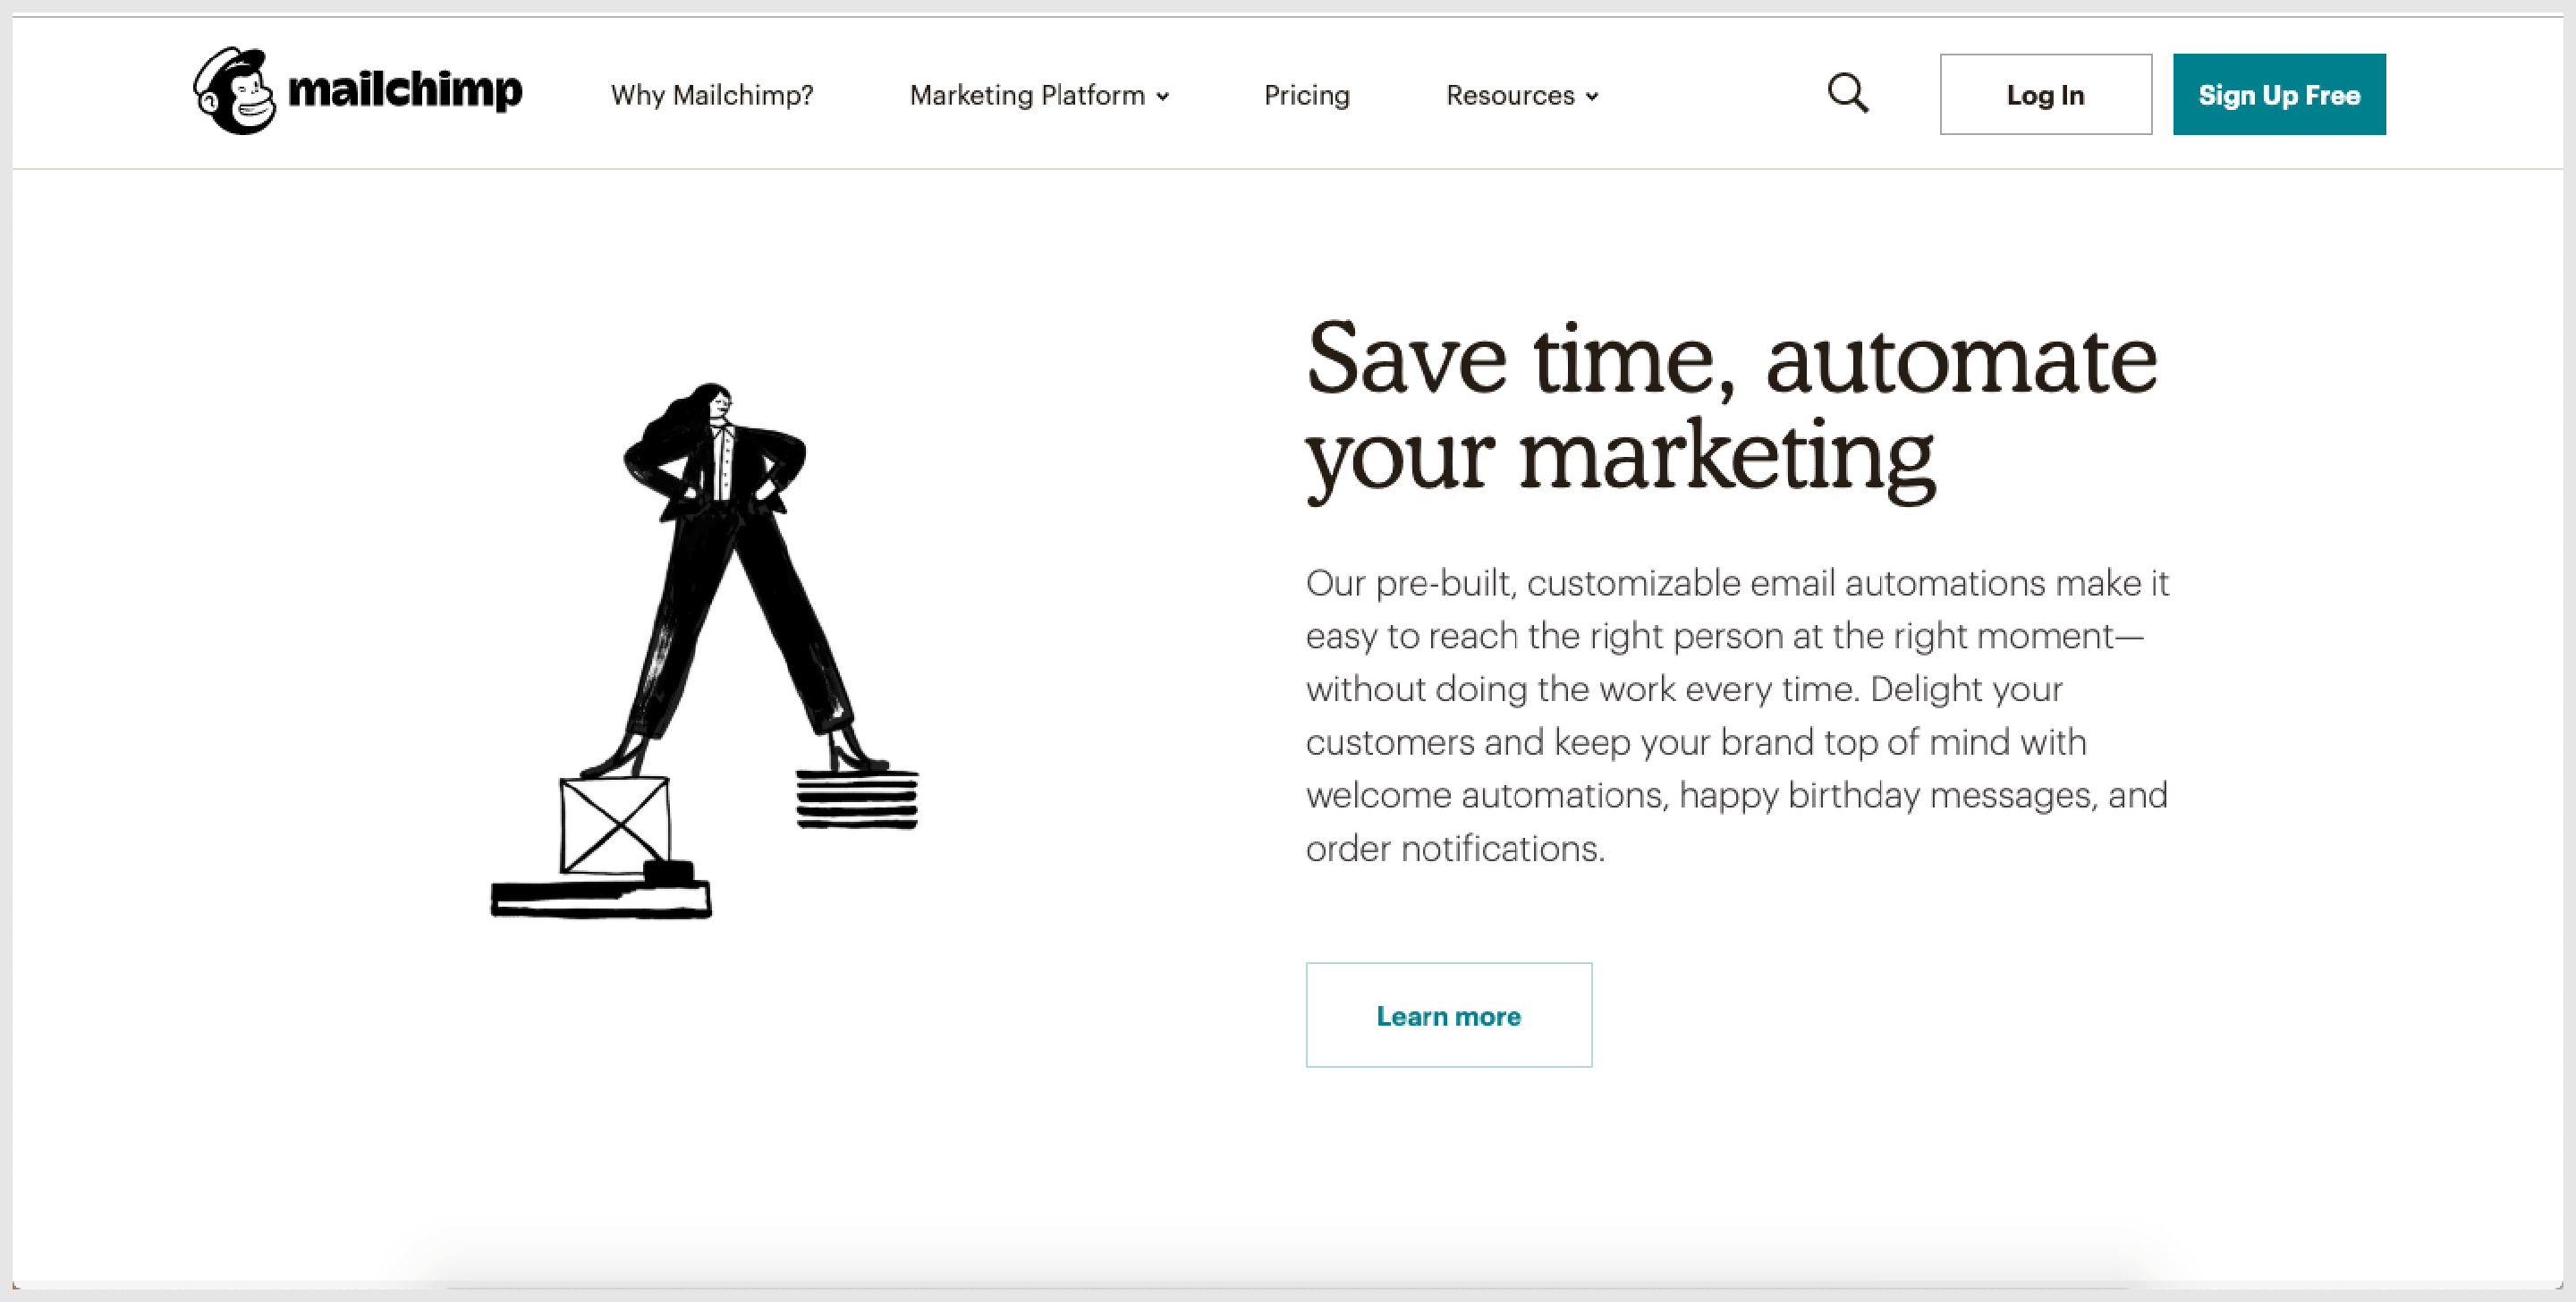 Mailchimp helps millions of businesses around the world by providing them AI-powered tools to help streamline workflow.